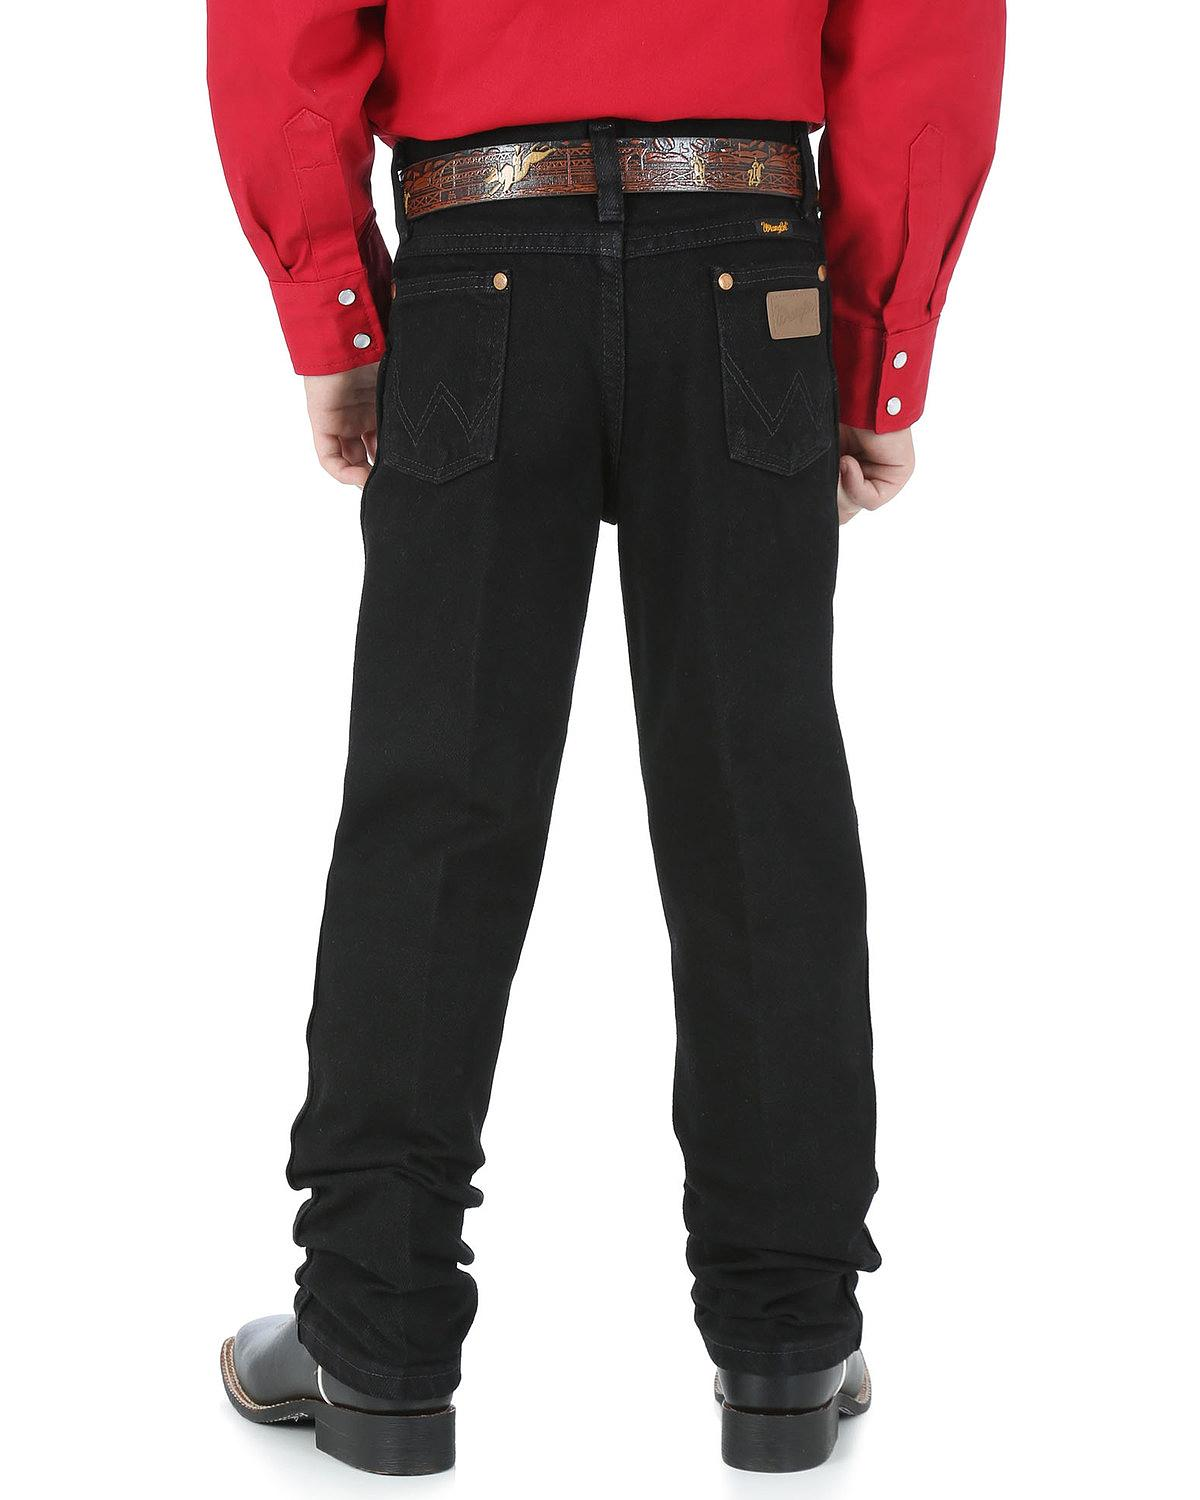 Keep your boy looking good and feeling comfortable with new boys' jeans. Cool, comfortable and easy-to-wash boys' jeans are a staple of every growing boy's wardrobe. Relaxed fit boys' husky jeans are durable enough for active, outdoor play over the summer vacation, but .